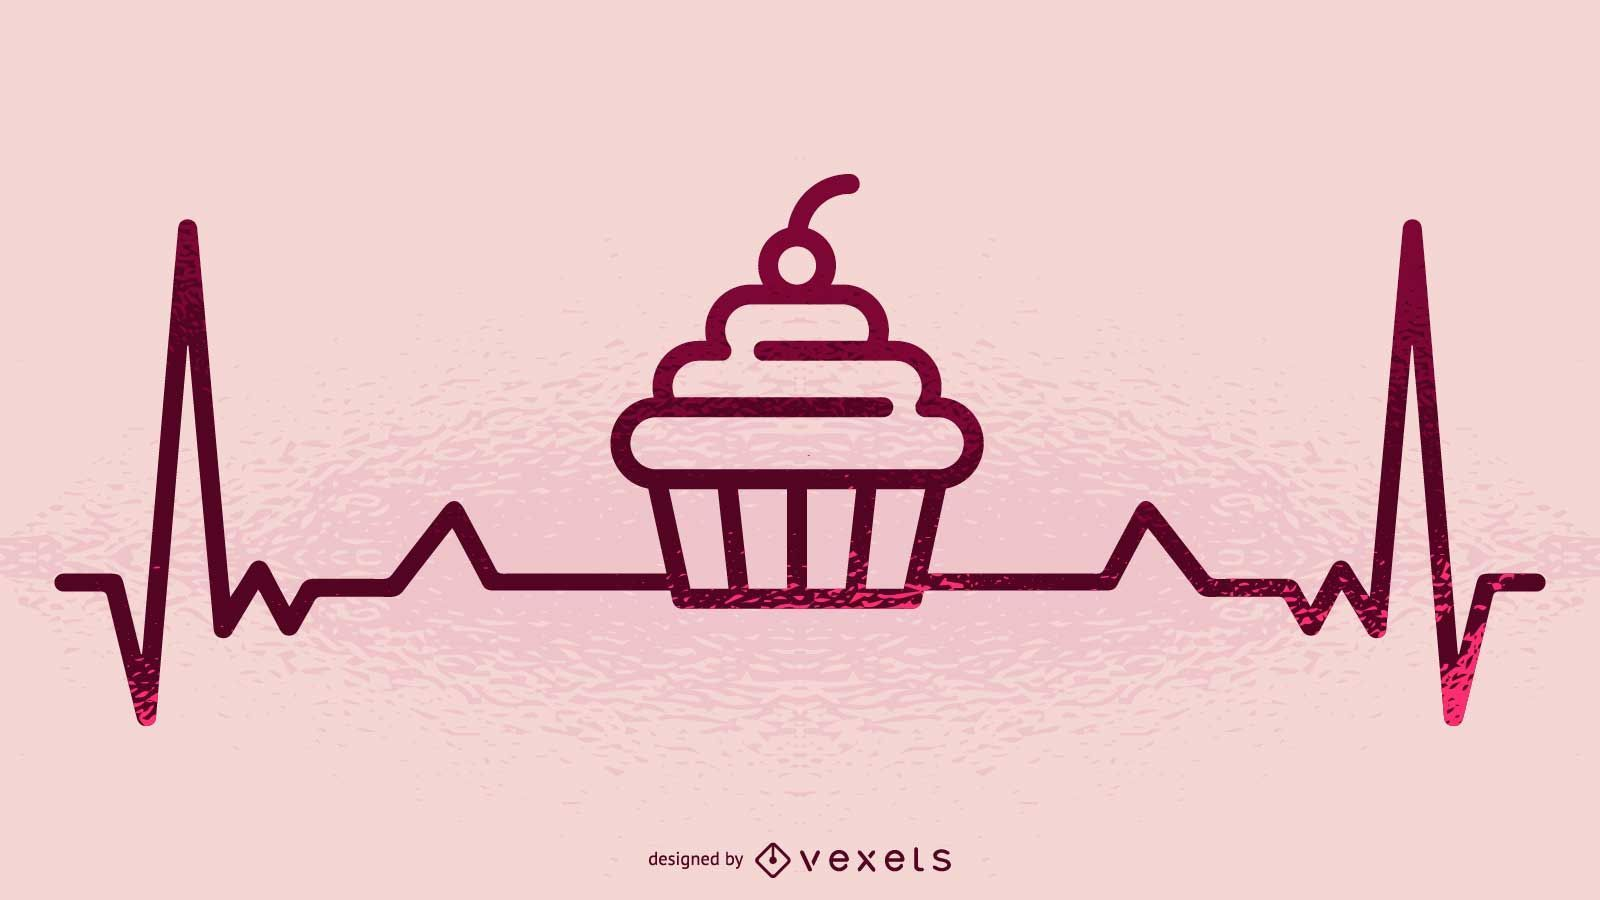 Cupcake and heartbeat illustration